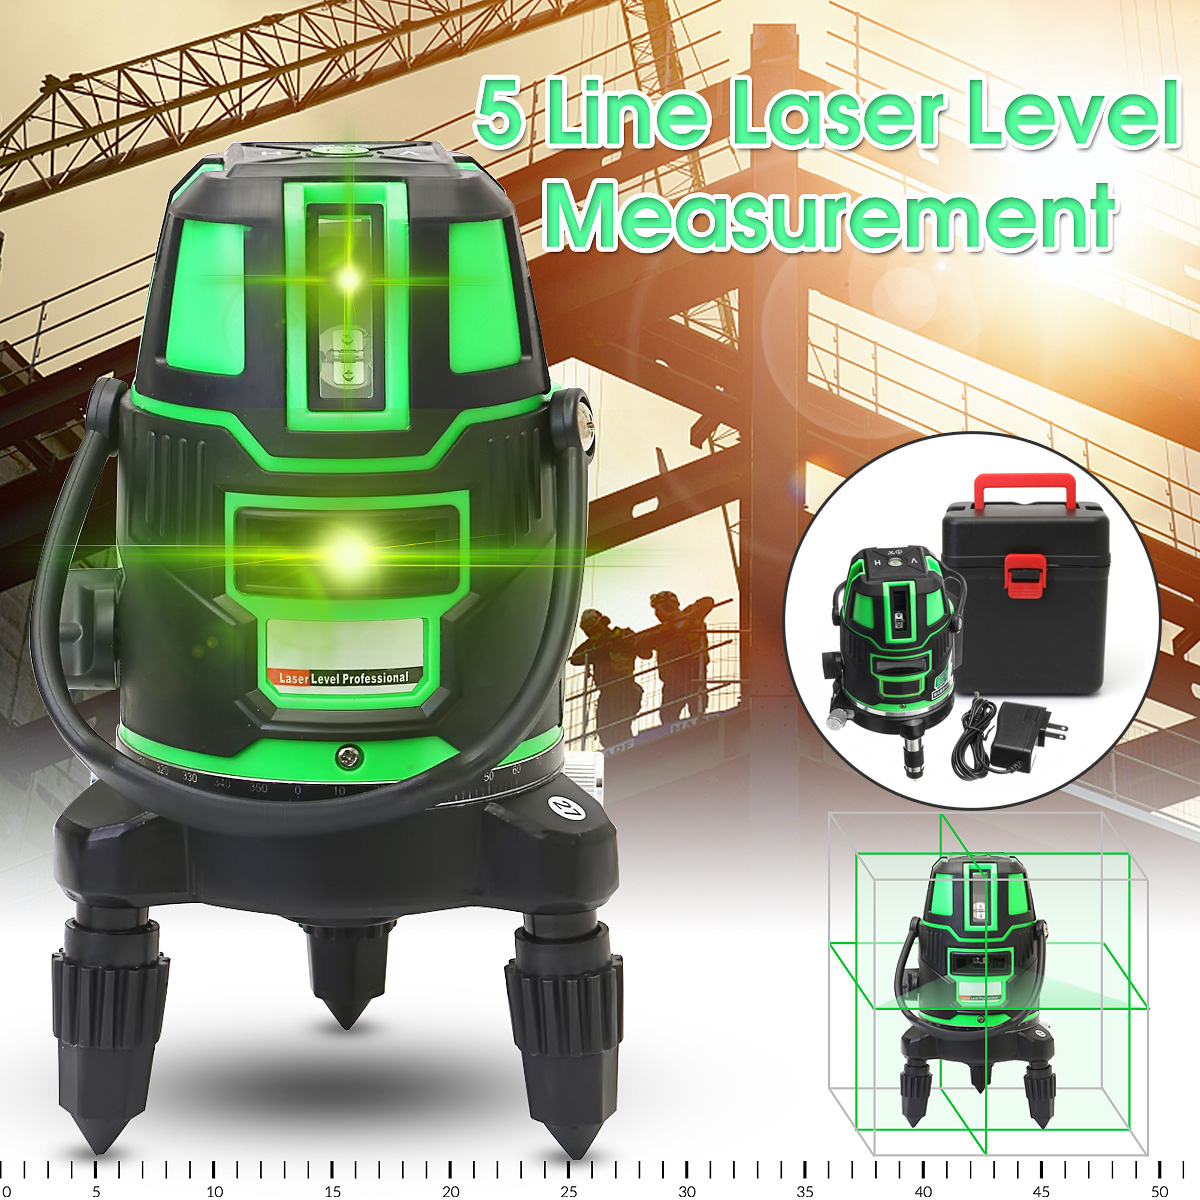 Brand New 5 line 6 point Green laser level Outdoor 360 degree rotary cross laser line level a8832g akg2 green laser level 2 lines1dot 360 degree rotary spirit level indoor outdoor dual use